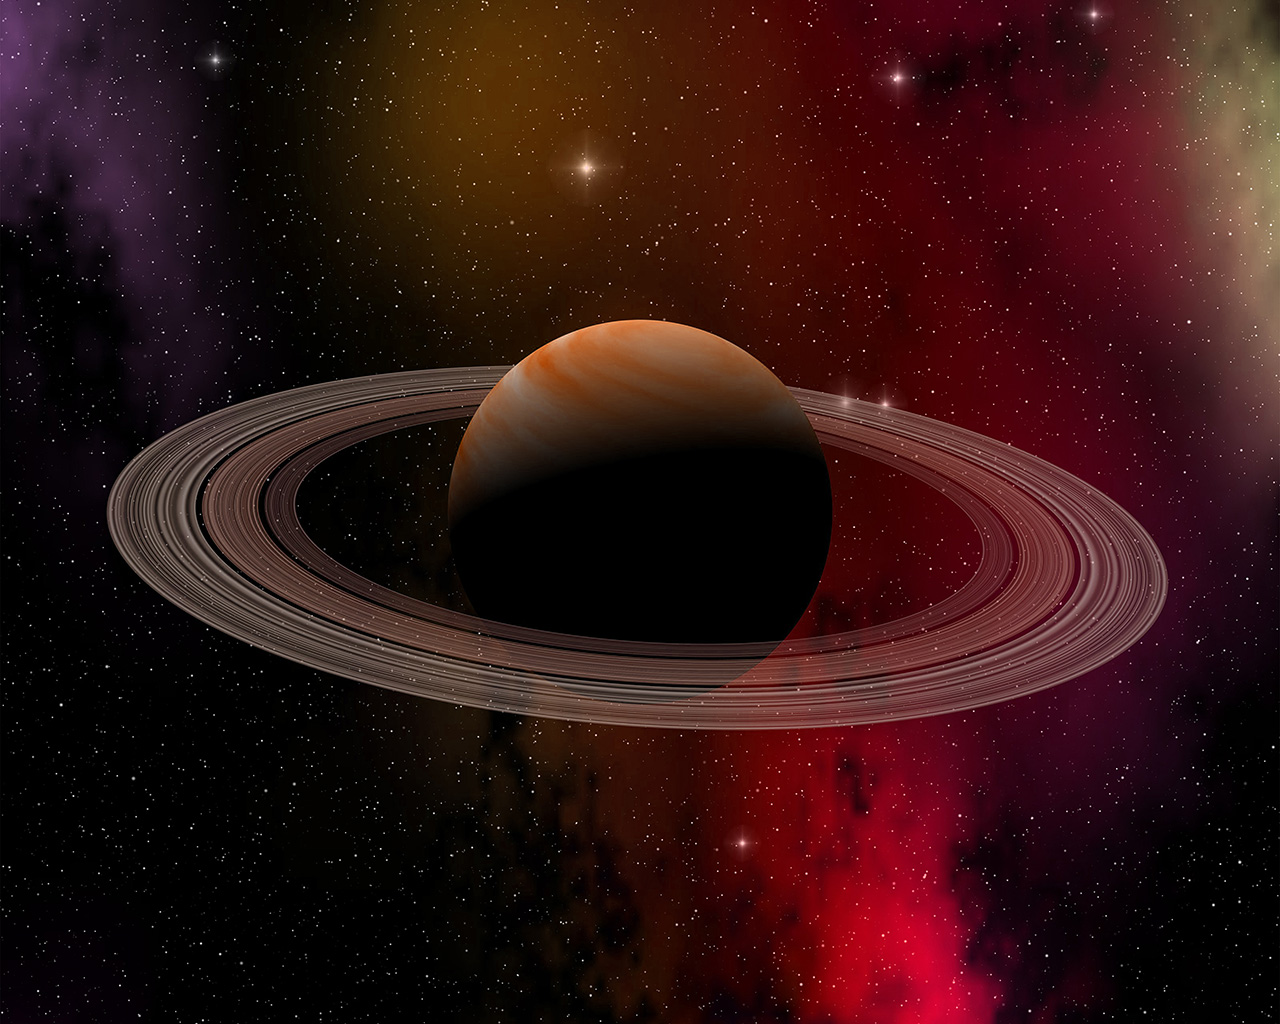 at79-space-planet-saturn-star-art-illustration-red-wallpaper